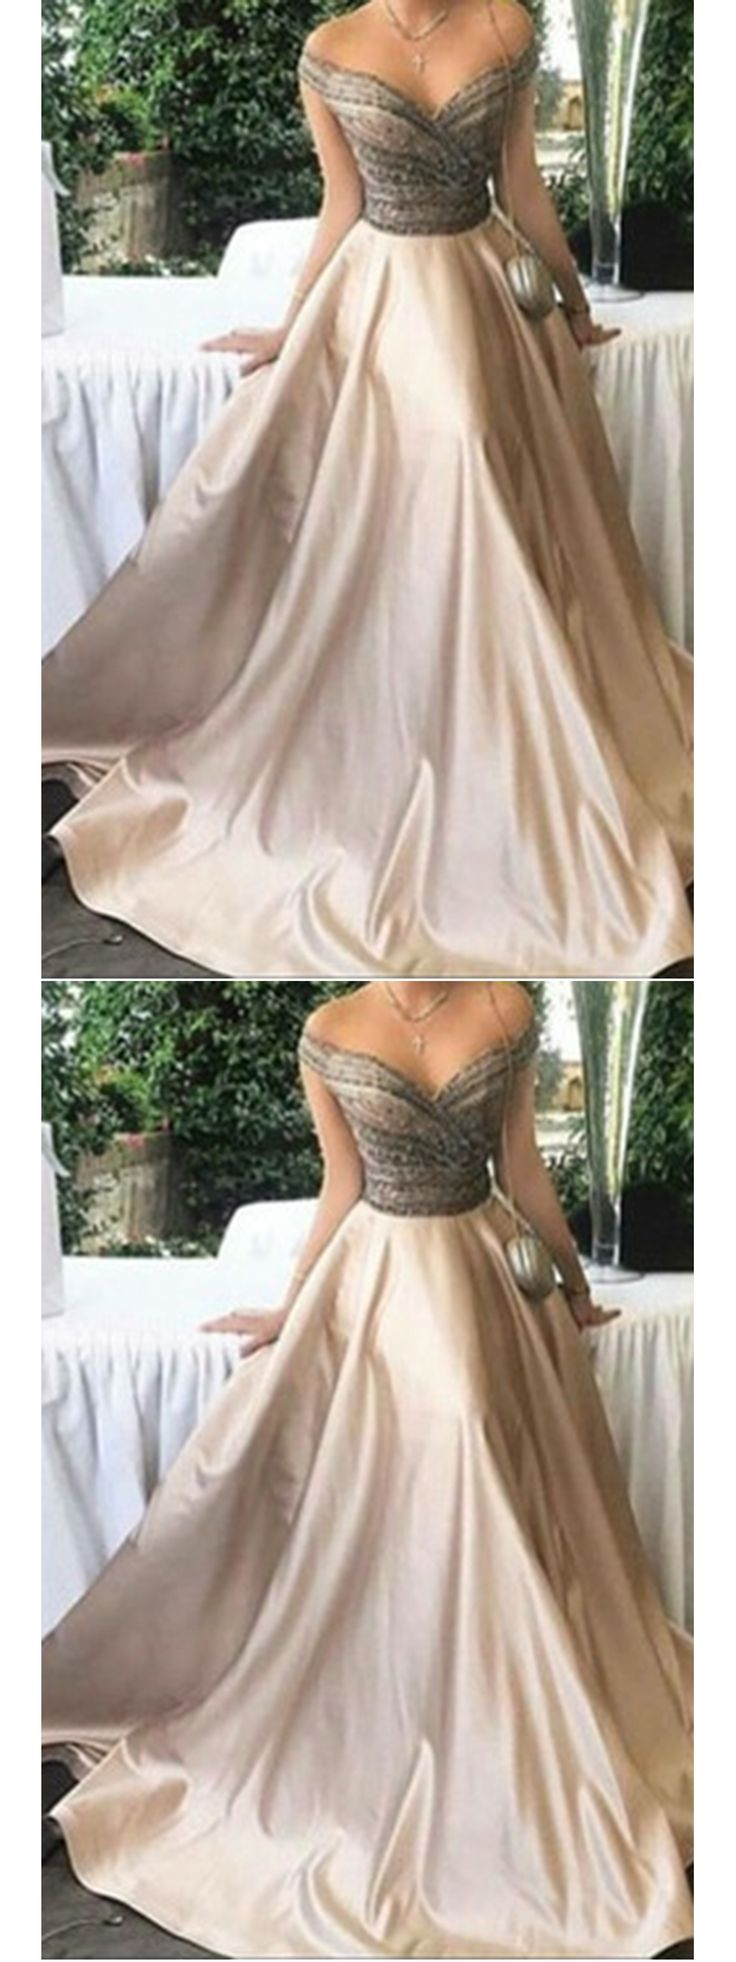 Long Prom Dresses Off-the-shoulder Floor-length Satin Sexy Prom Dress/Evening Dress JKL186